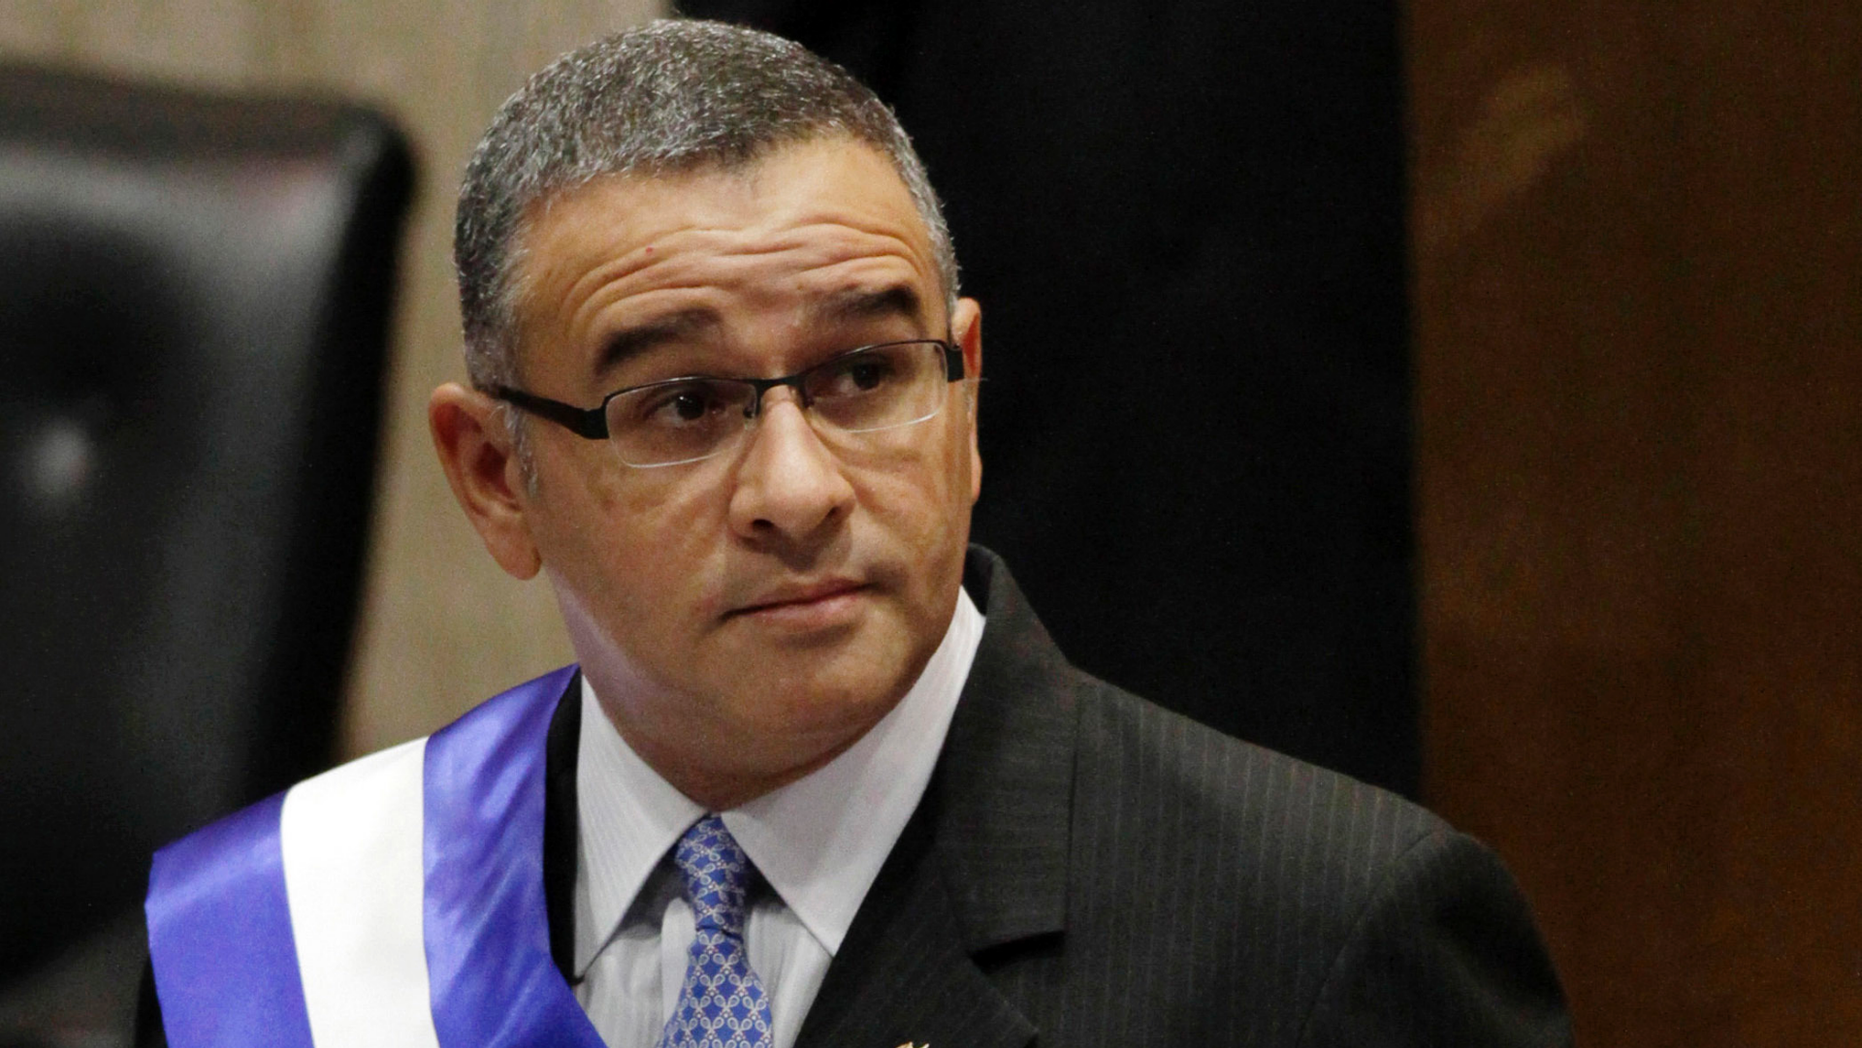 FILE - In this June 1, 2012 file photo, El Salvador's President Mauricio Funes stands in the National Assembly before speaking to commemorate the anniversary of his third year in office in San Salvador, El Salvador. Funes, who is a fugitive of El Salvador's courts and lives under political asylum in Nicaragua, said Monday, May 13, 2019, that he is working as an adviser to the government of Nicaraguan President Daniel Ortega.  (AP Photo/Luis Romero, File)